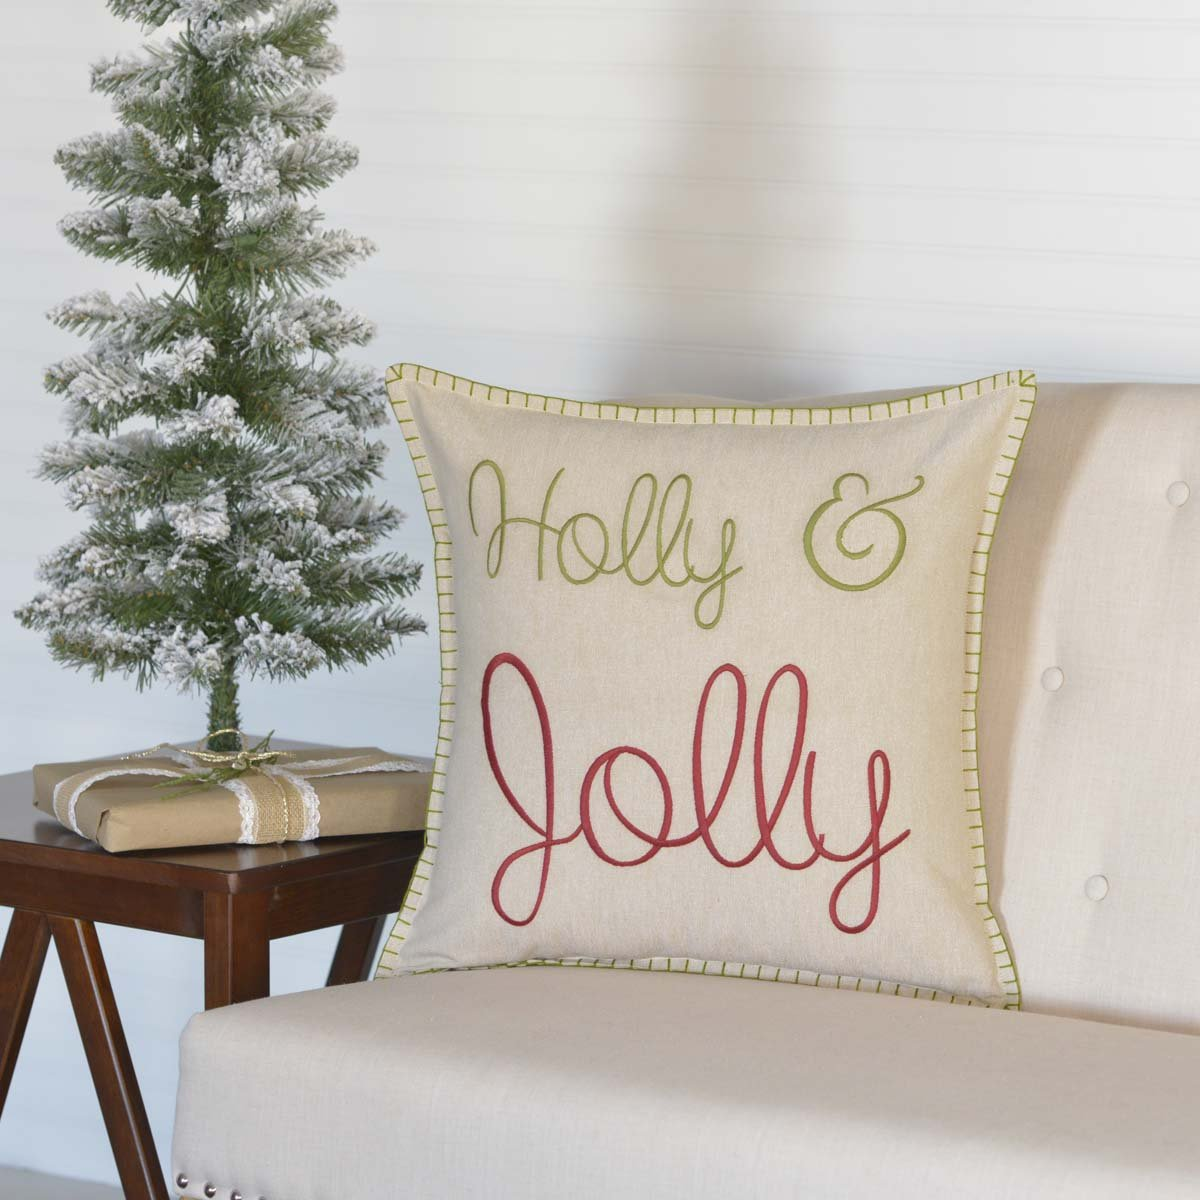 Holly & Jolly Pillow.